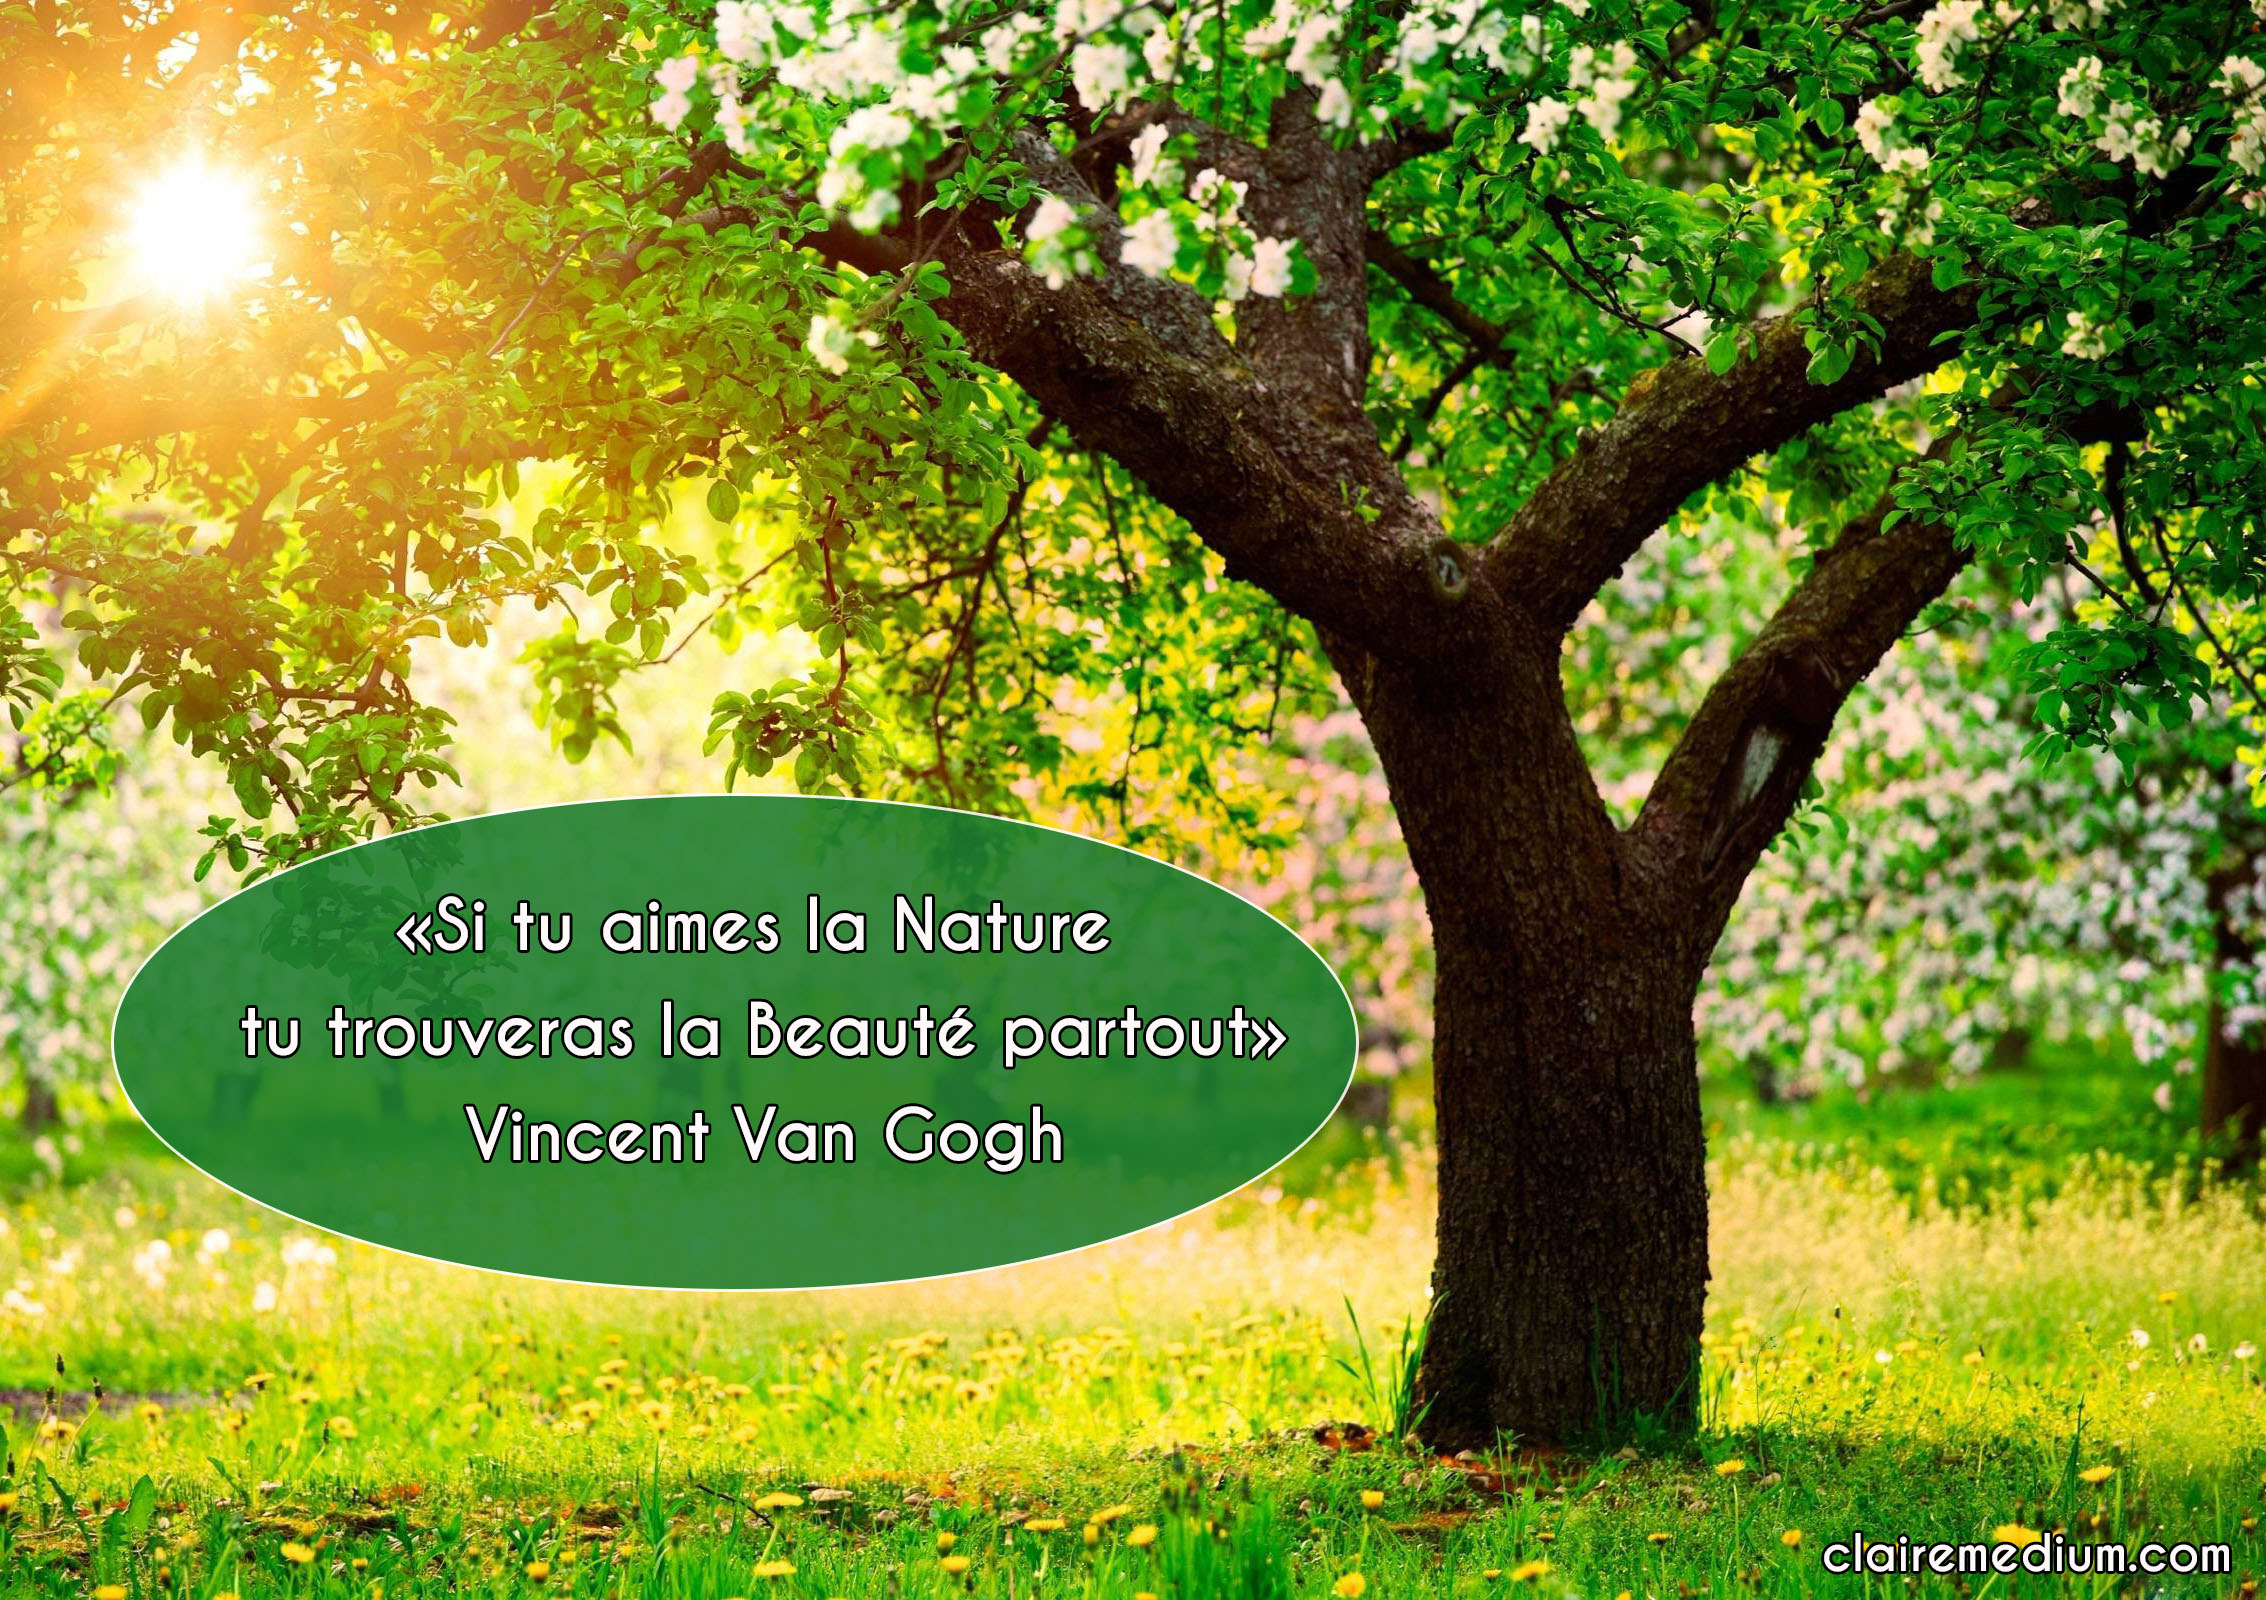 La citation du jour par Vincent Van Gogh